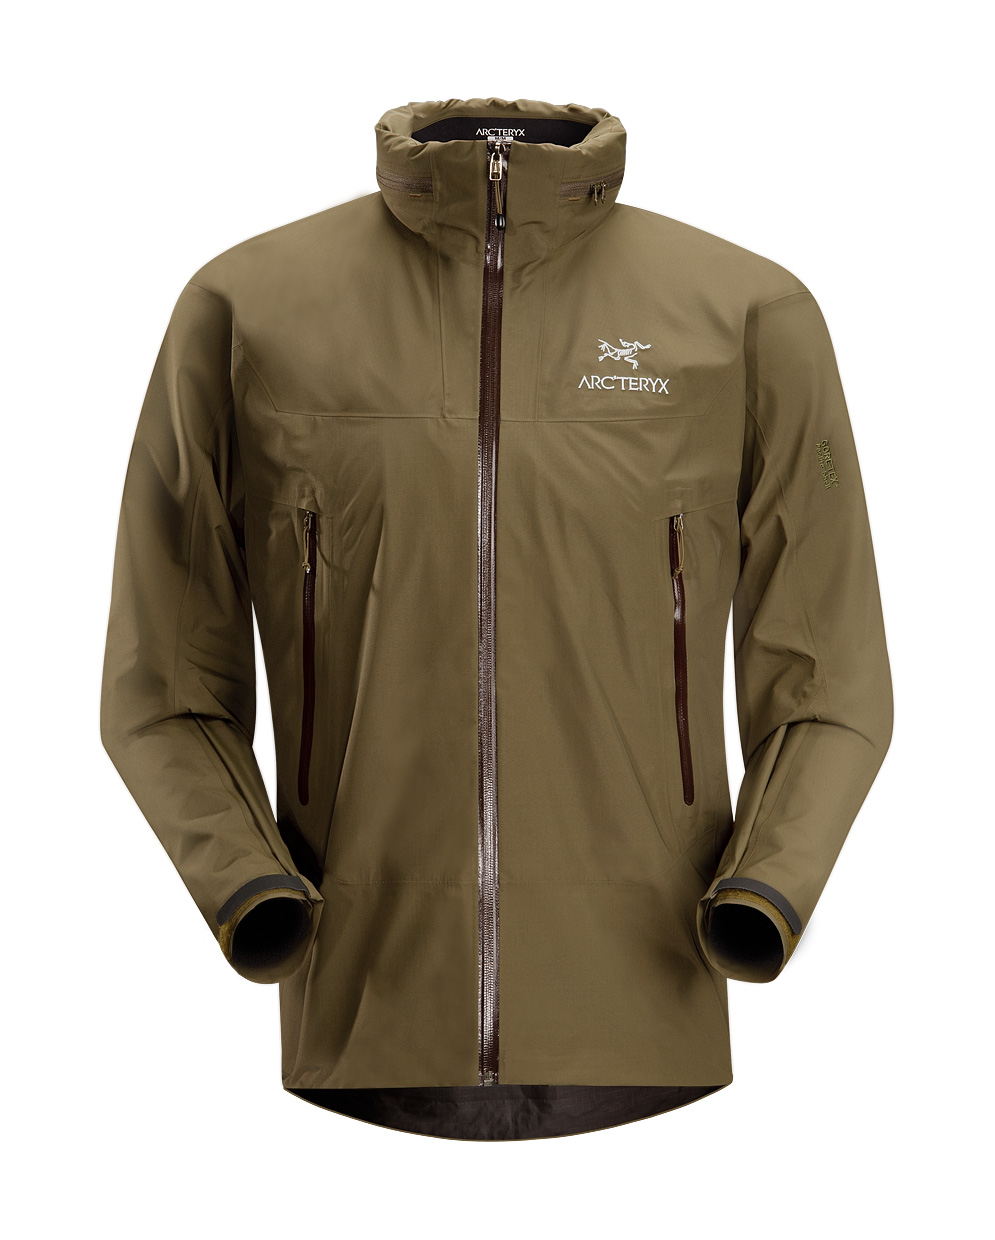 Arcteryx Jackets Men Peat Theta SL Hybrid Jacket - New